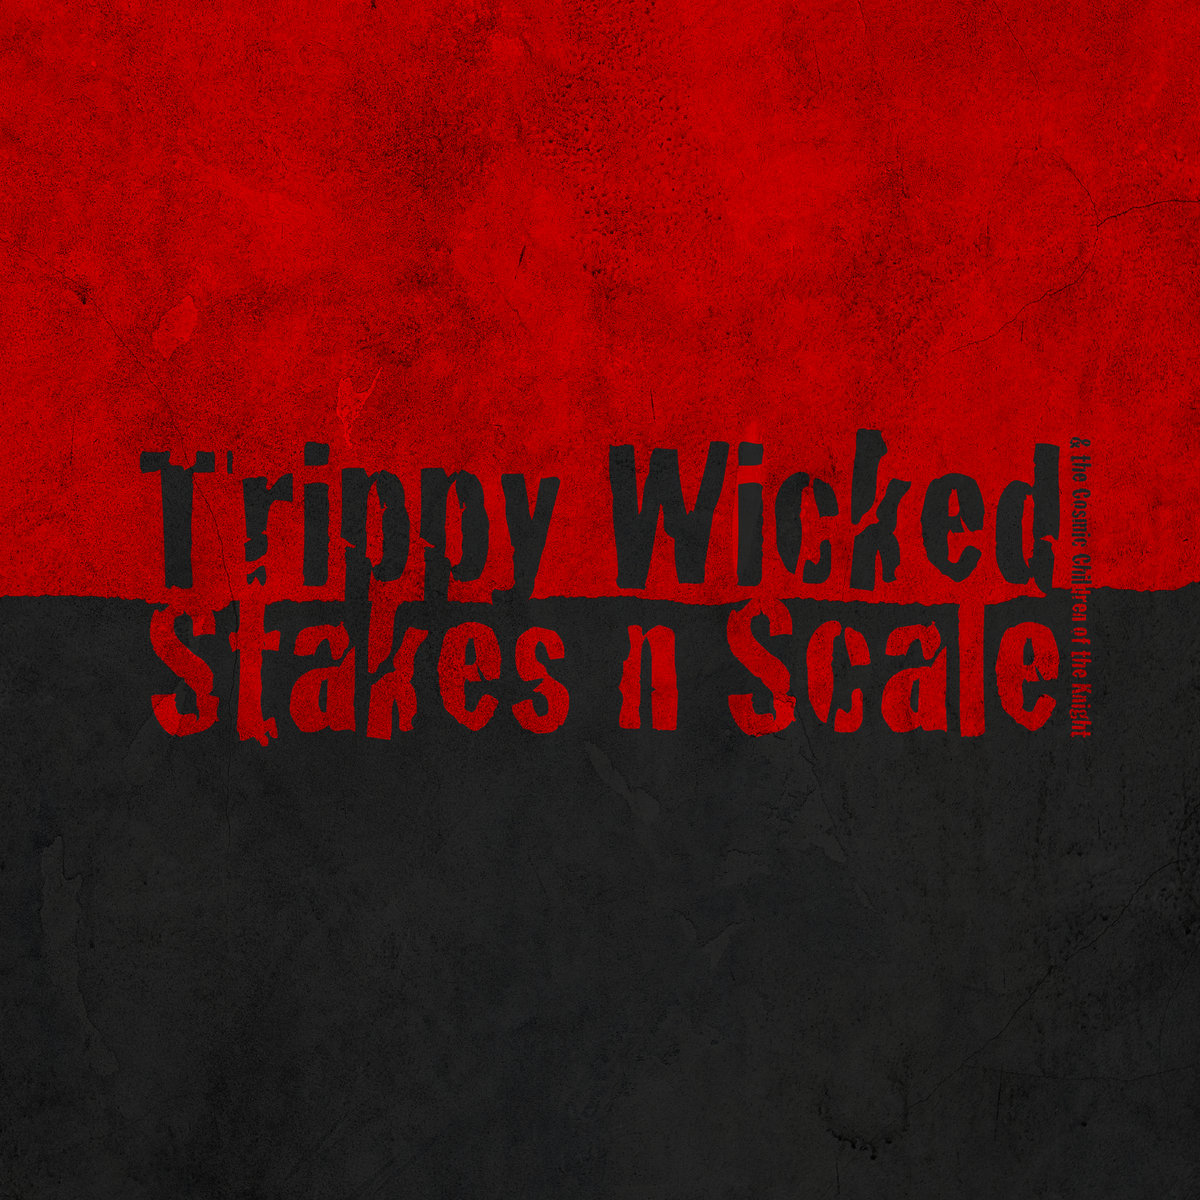 trippy wicked stakes n scale